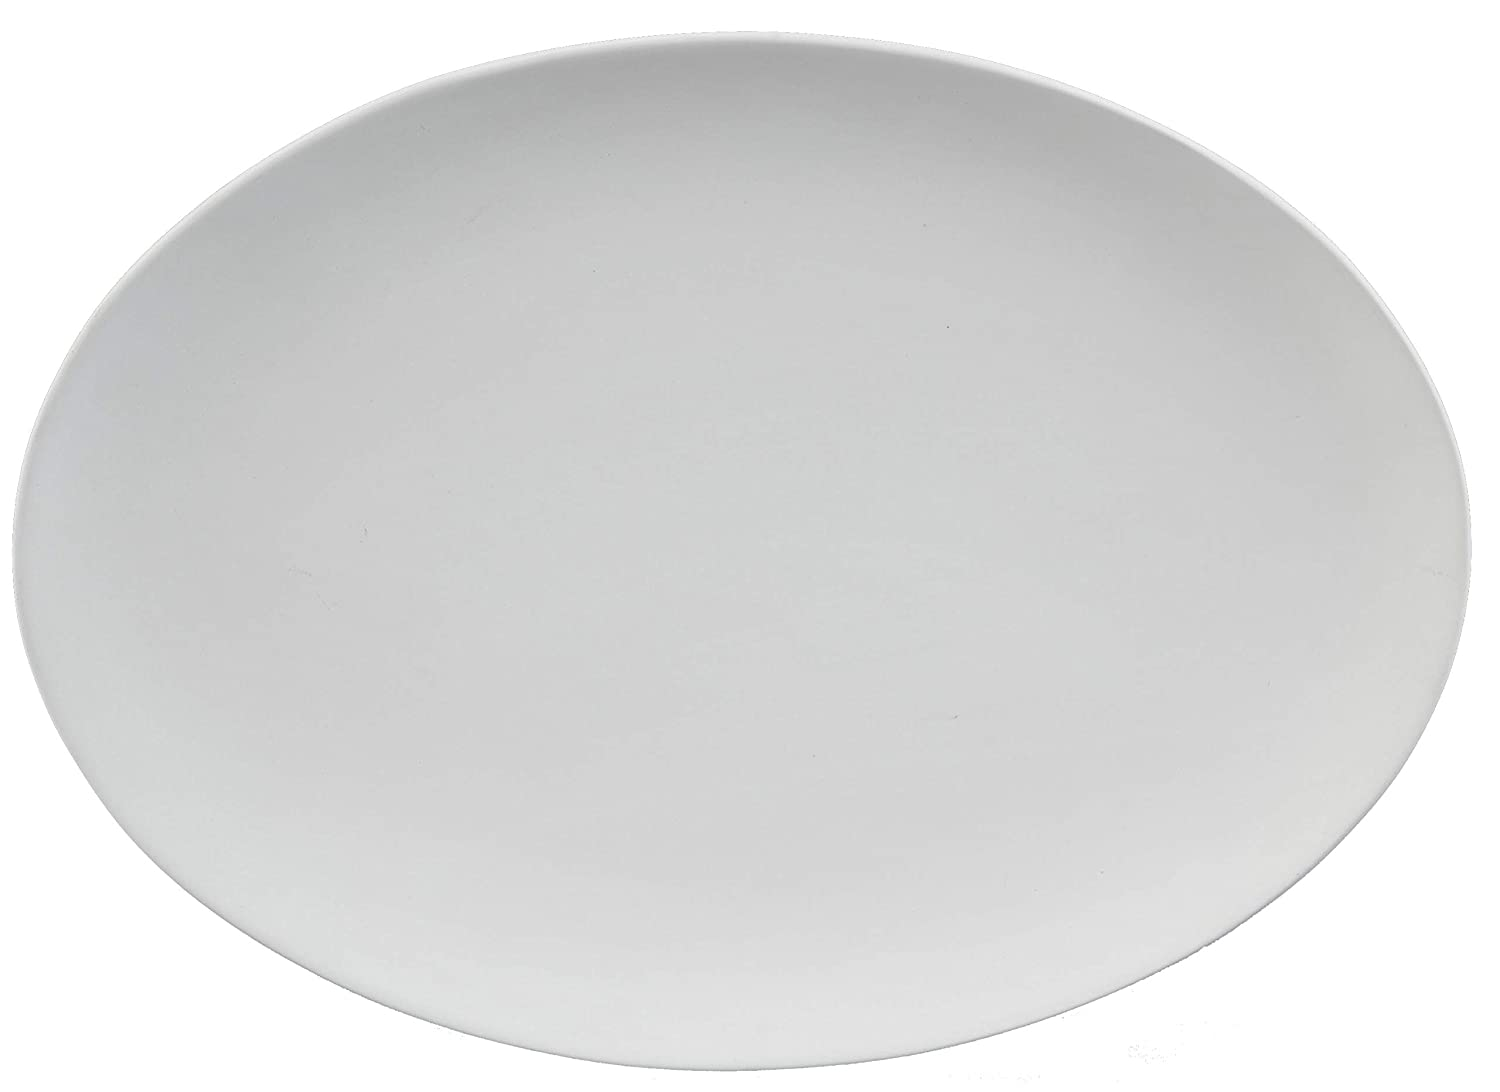 Creative Hobbies Coupe Oval Platter, 16 inch, Case of 6, Unfinished Ceramic Bisque, with How to Paint Your Own Pottery Booklet